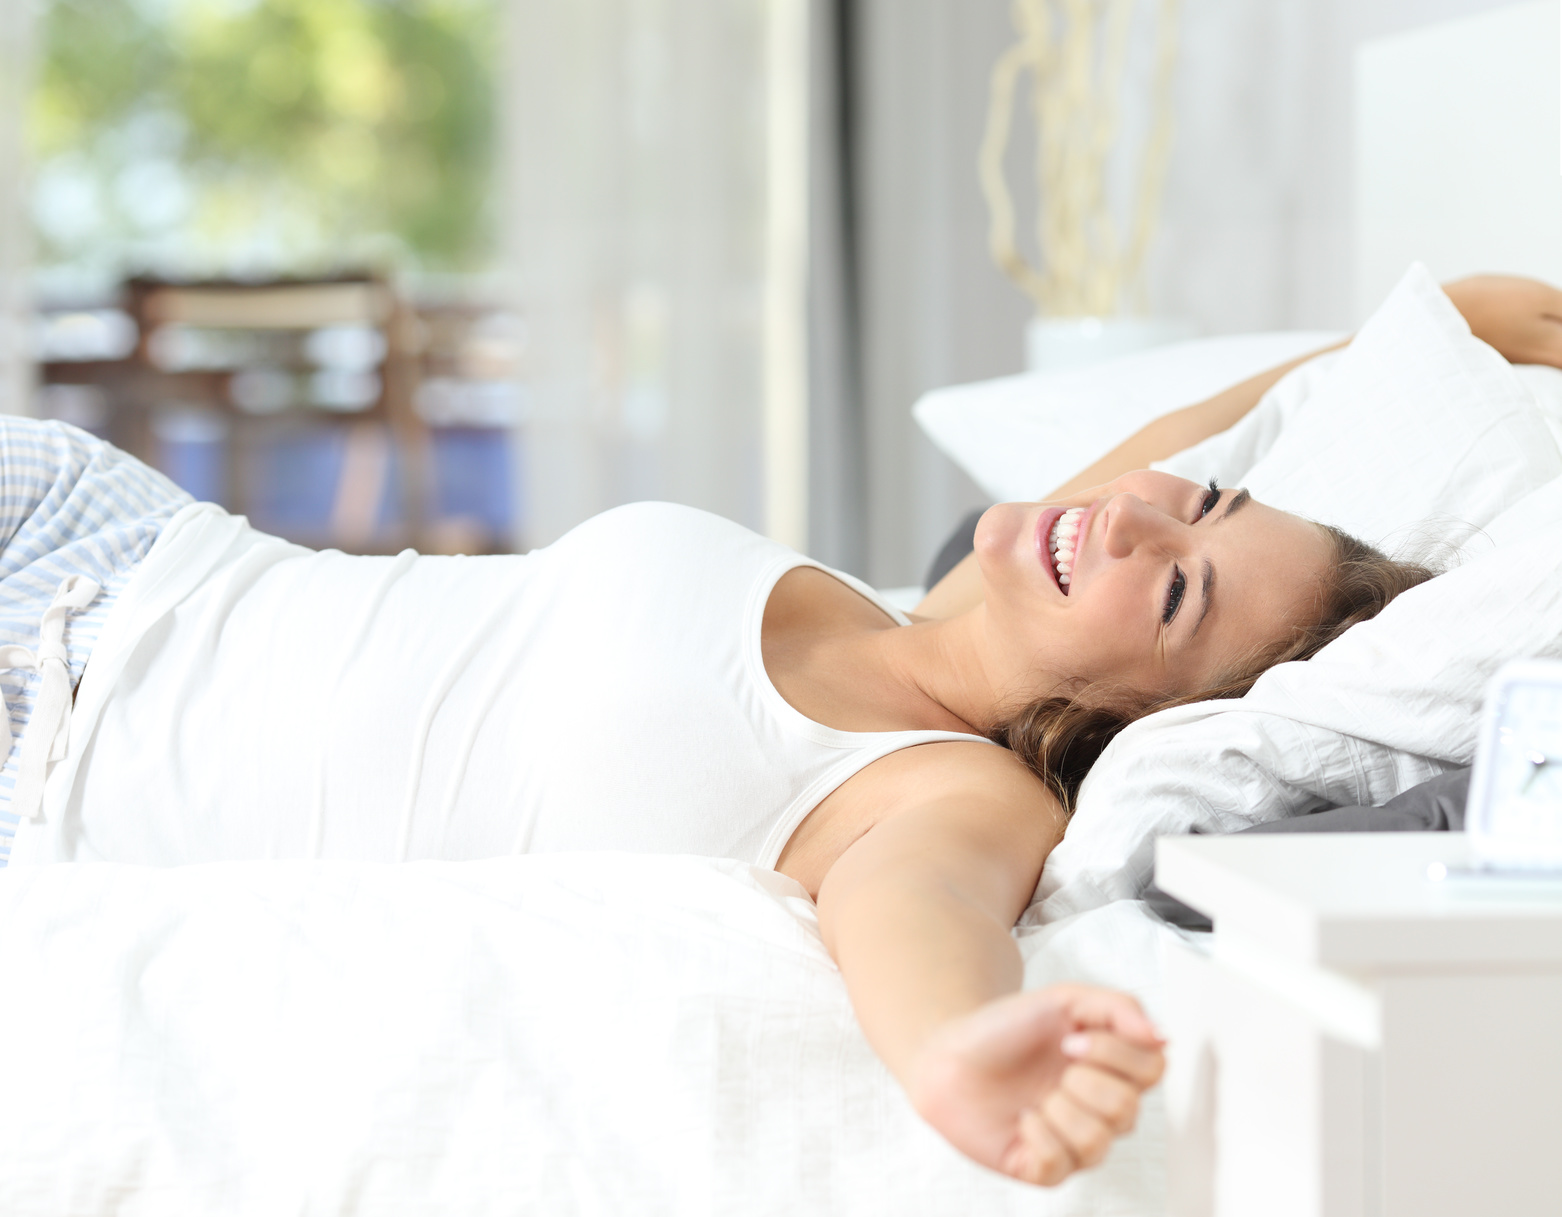 Back Pain Insomnia How To Sleep Better With 4 Tips